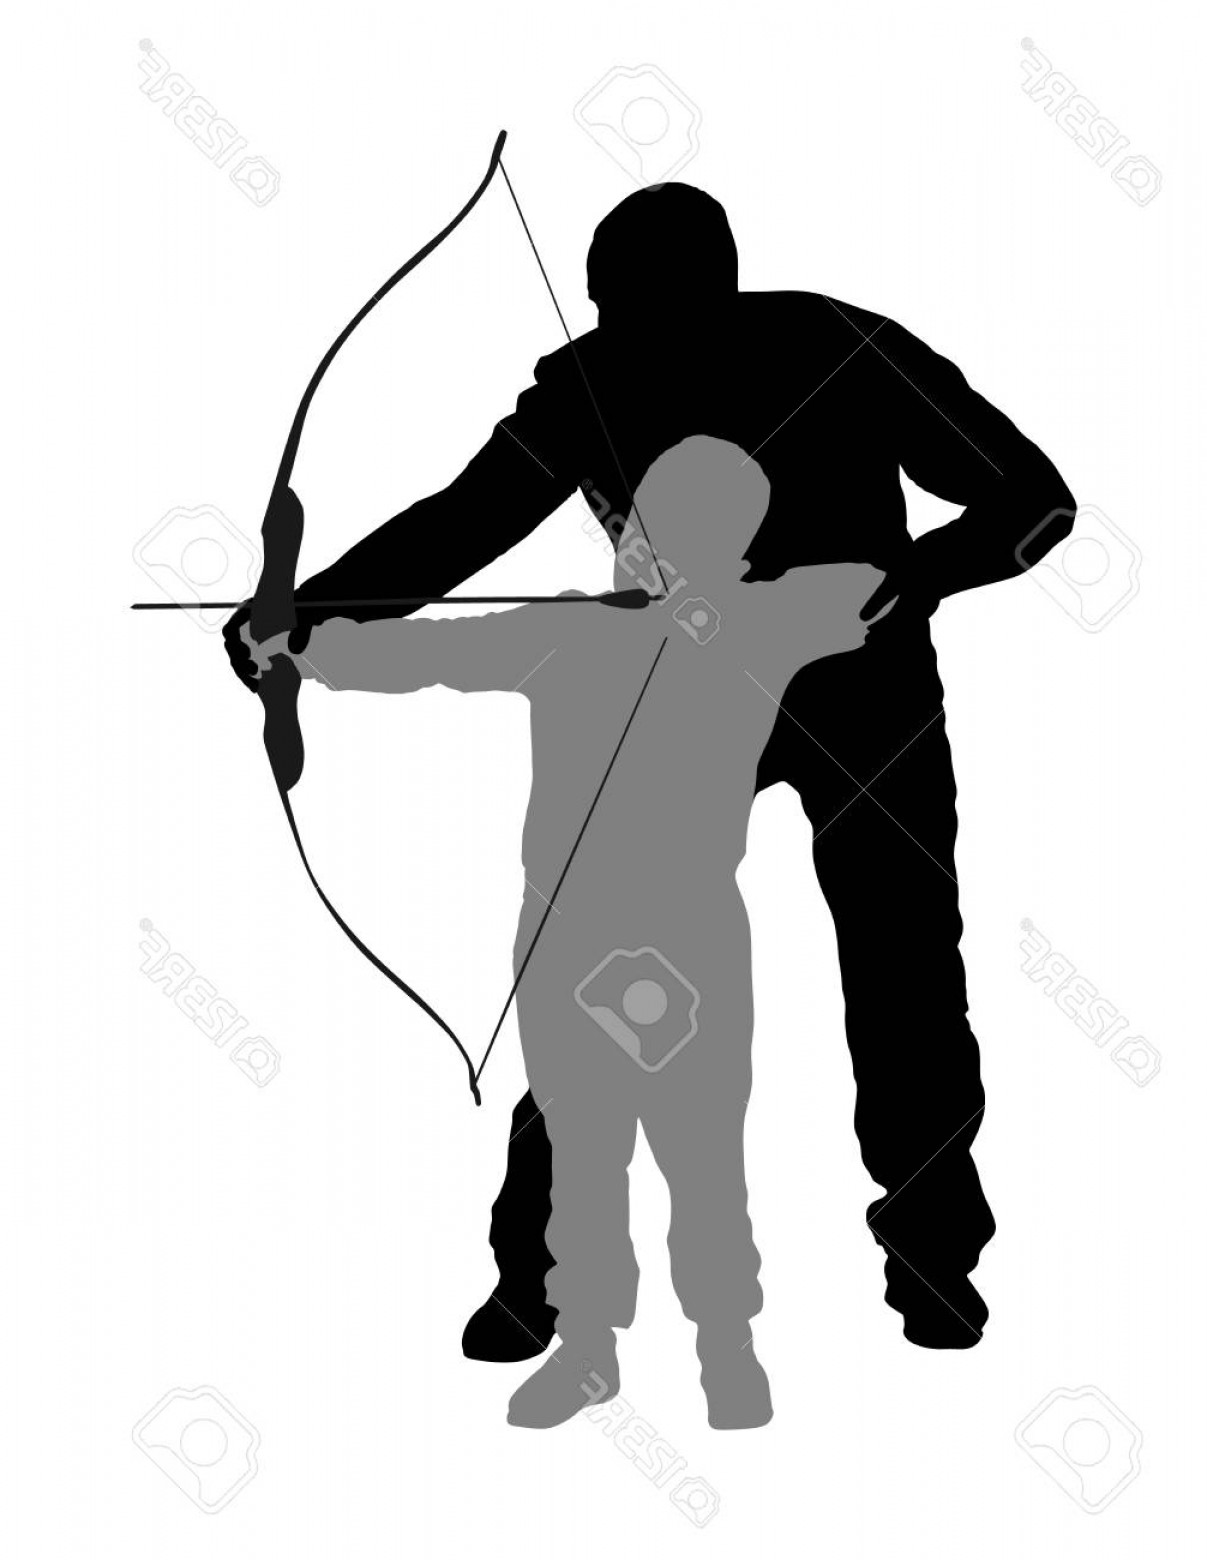 Vector Archery Silhouette: Photostock Vector Archer Vector Silhouette Illustration Isolated On White Background Hunter In Hunting Dad Teaches His